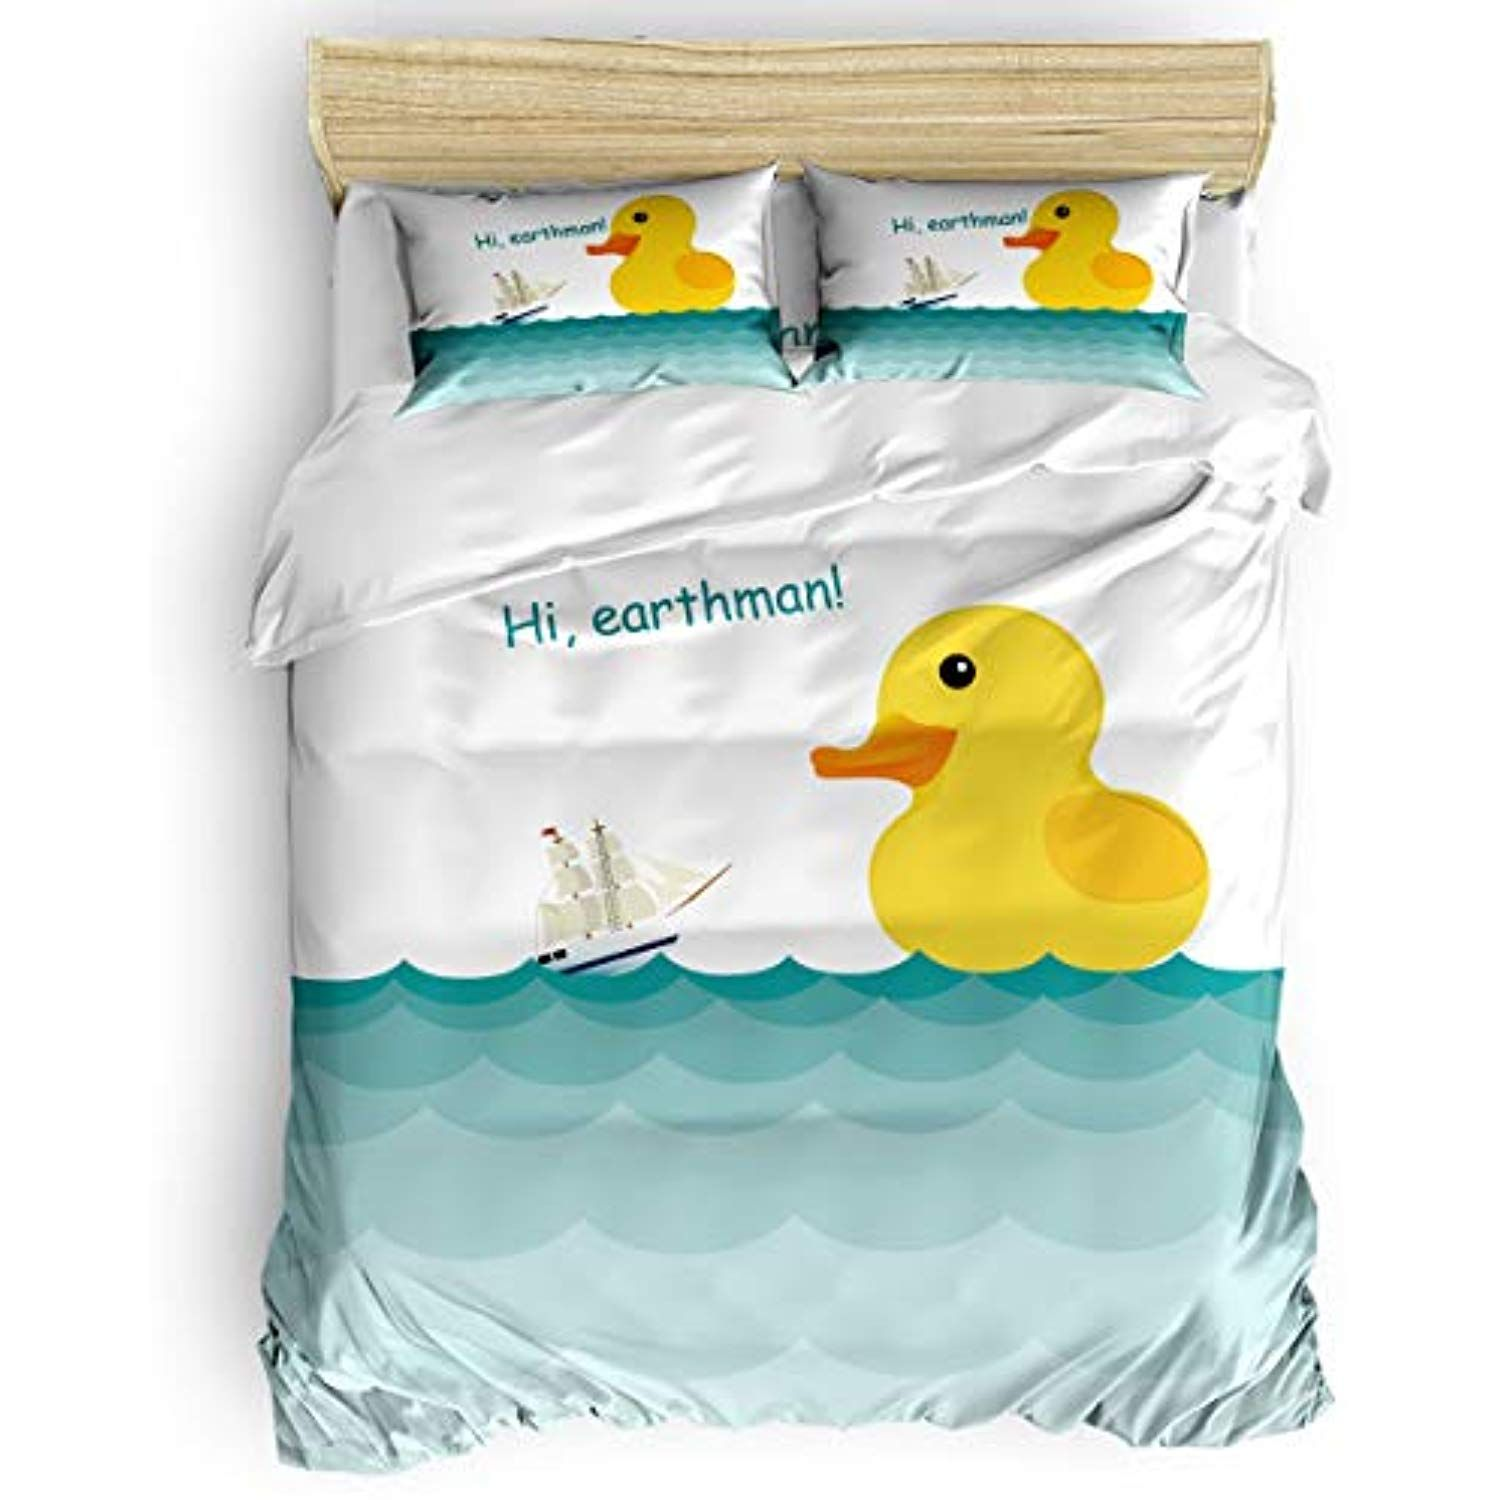 Cartoon Lovely Yellow Duck 4pcs Bedding Sets Queen Size Duvet Cover Soft Stylish Home Decor With Zipper And Cor Trendy Home Stylish Home Decor Work Space Decor